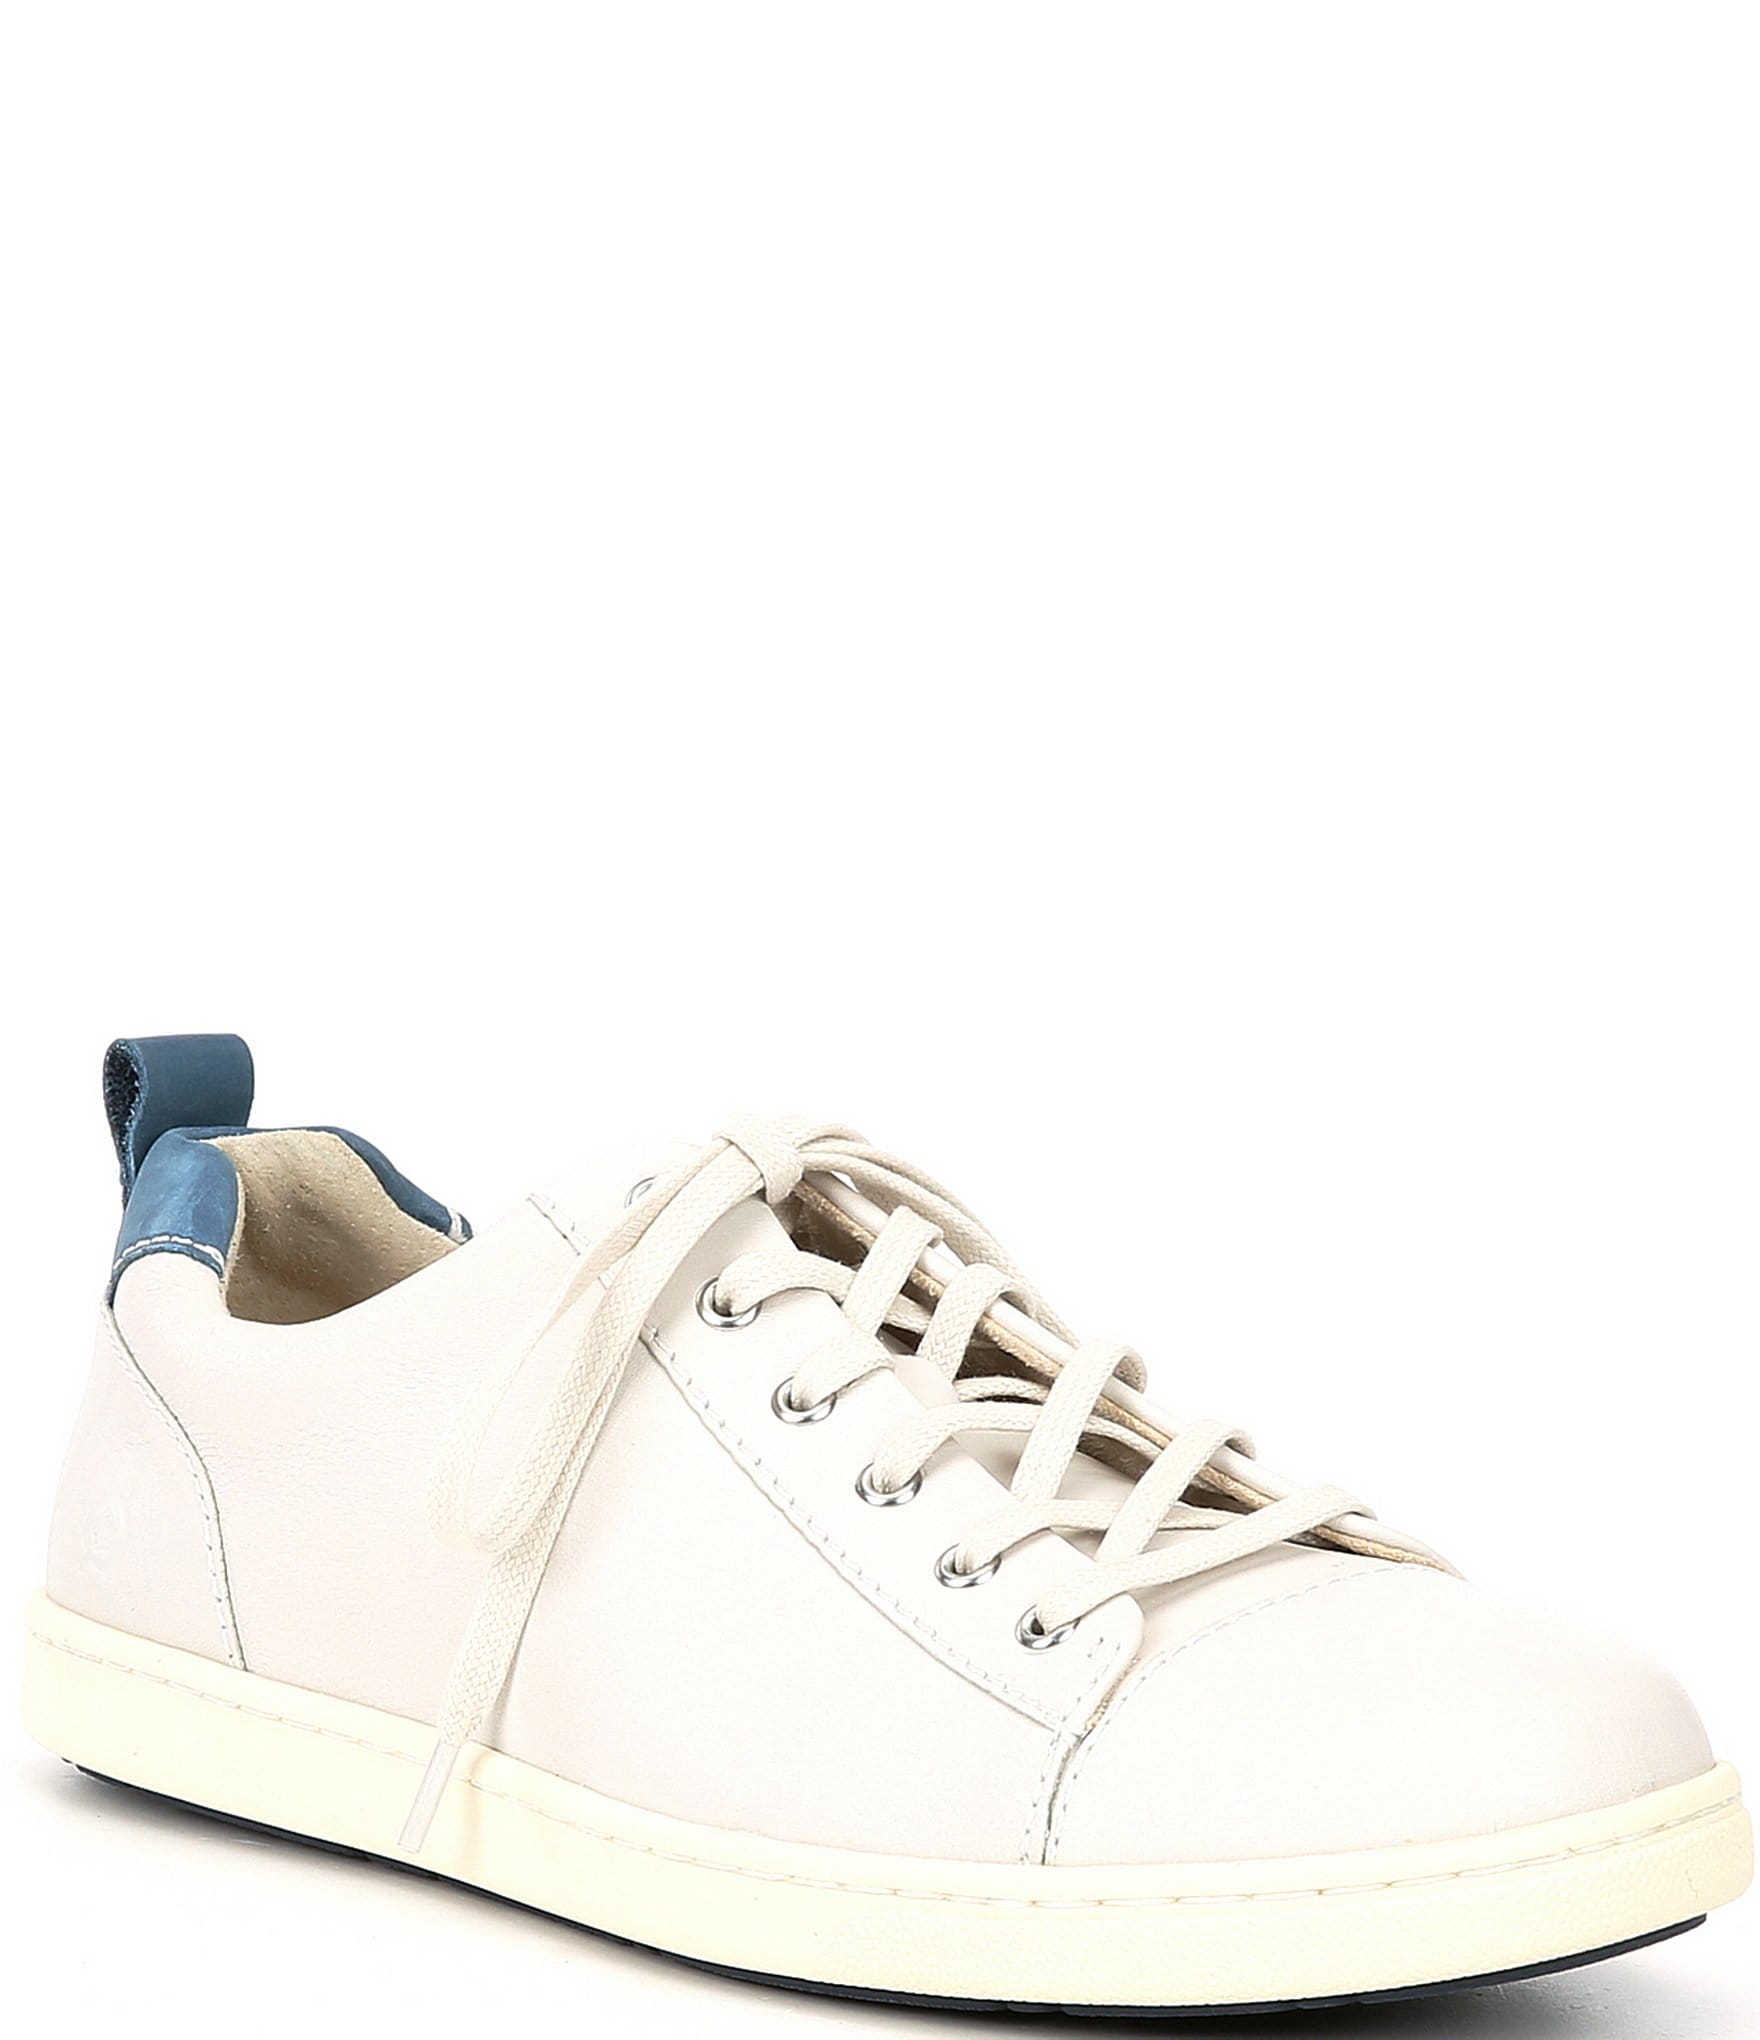 Allegheny Leather Lace-Up Sneakers